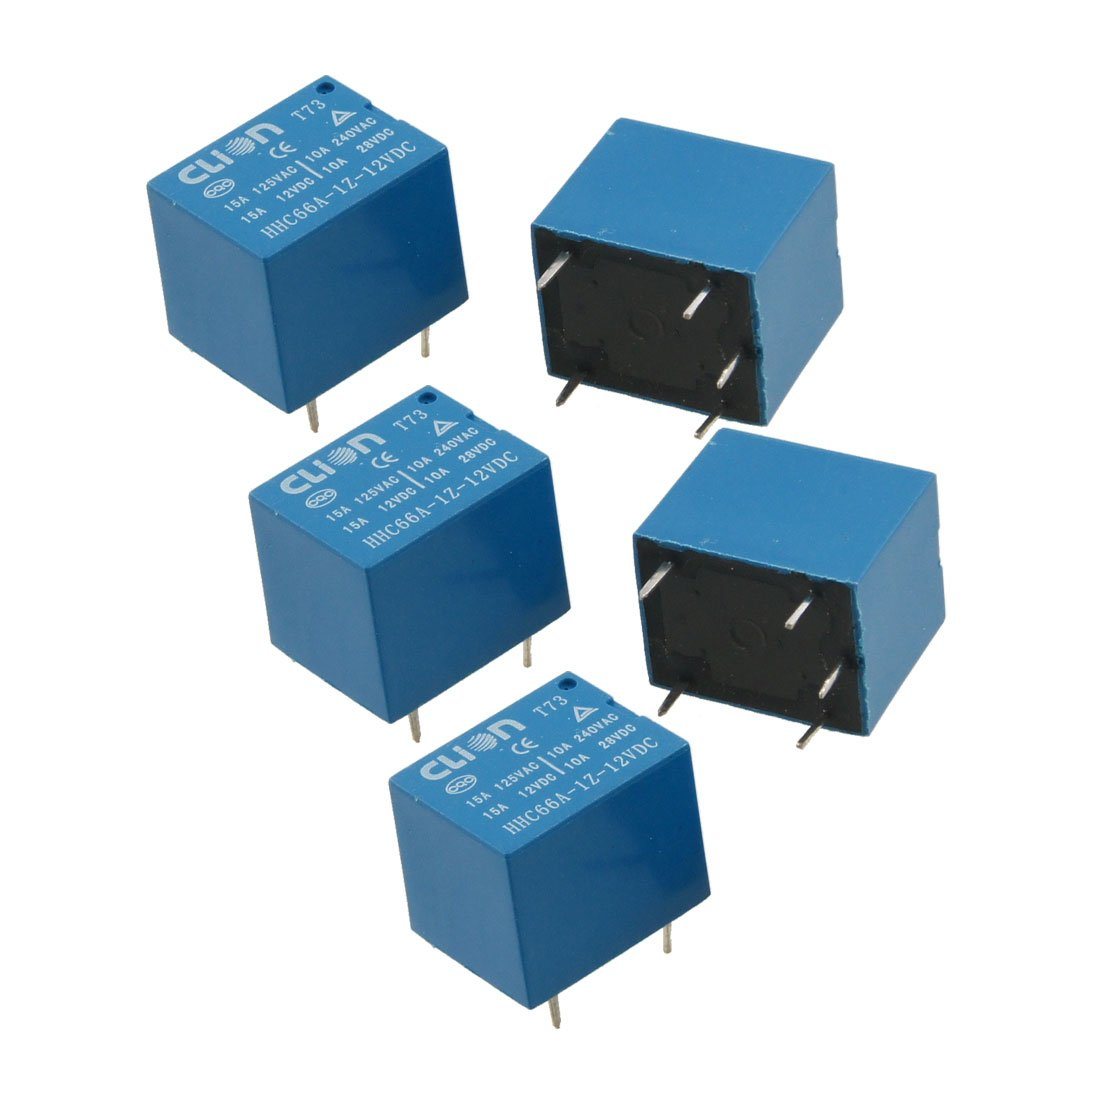 Uxcell 5 Pcs Dc 12v Coil Spdt Pin Mini Power Relays Pcb Type Datasheet Of Relay Hhc66a 1z 12vdc Industrial Scientific